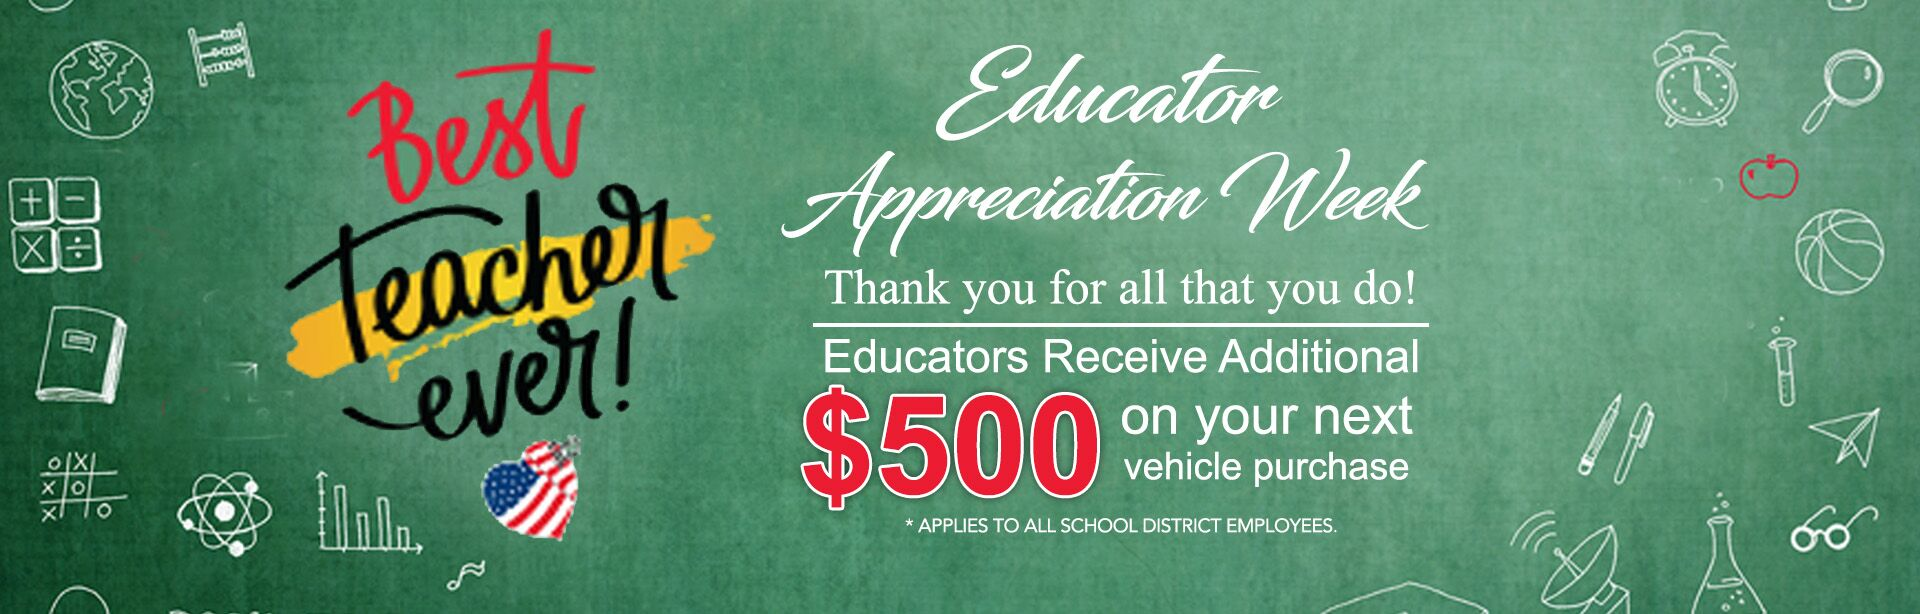 Educator Appreciation